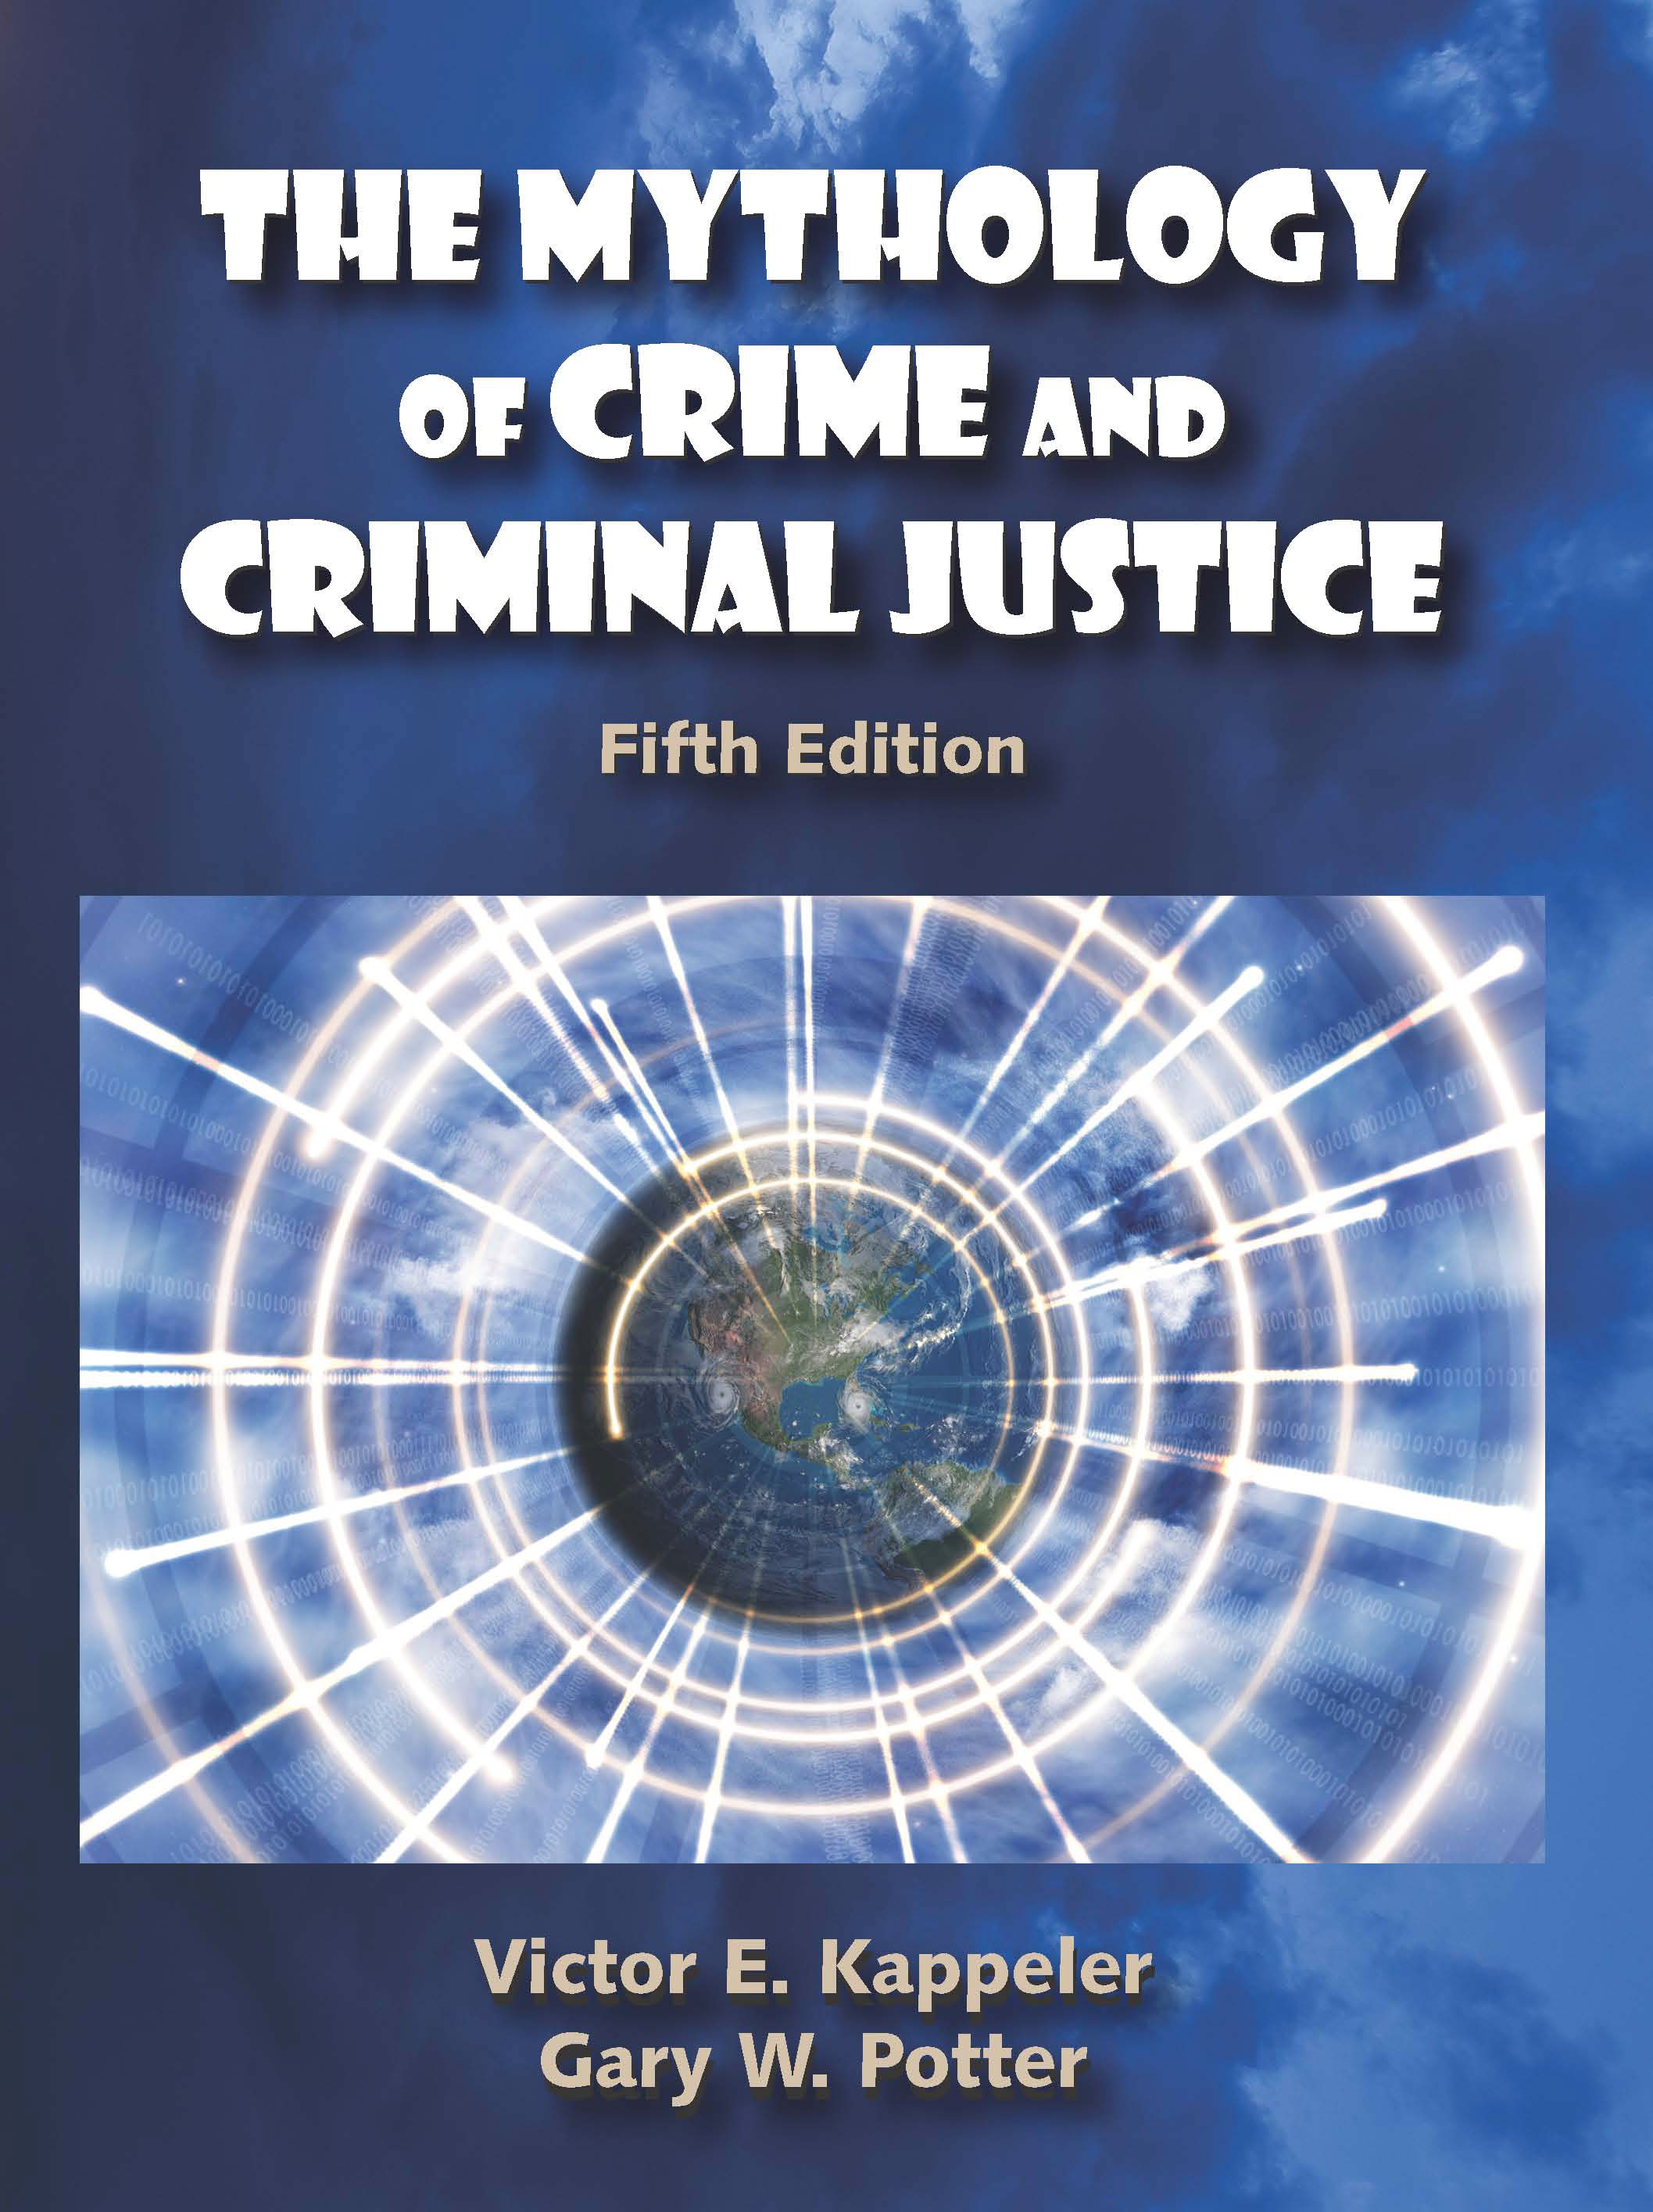 The Mythology of Crime and Criminal Justice: Fifth Edition by Victor E. Kappeler, Gary W. Potter